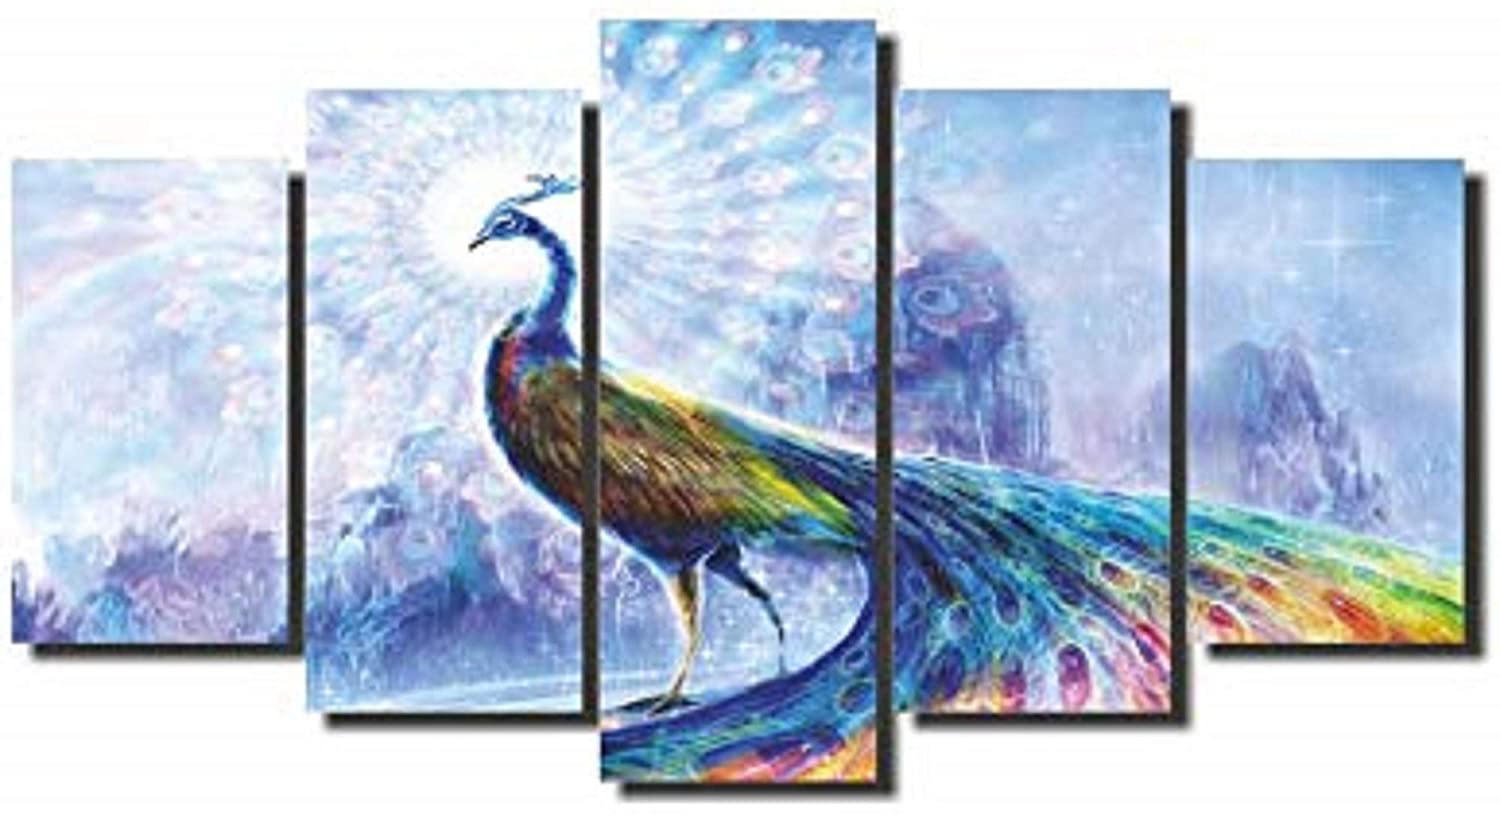 Mad Masters Peacock Spectrum 5 Panel Wall Painting Hd Canvas 173 X 84 Cm Pack Of 5 Mad C 2287 Amazon In Home Kitchen